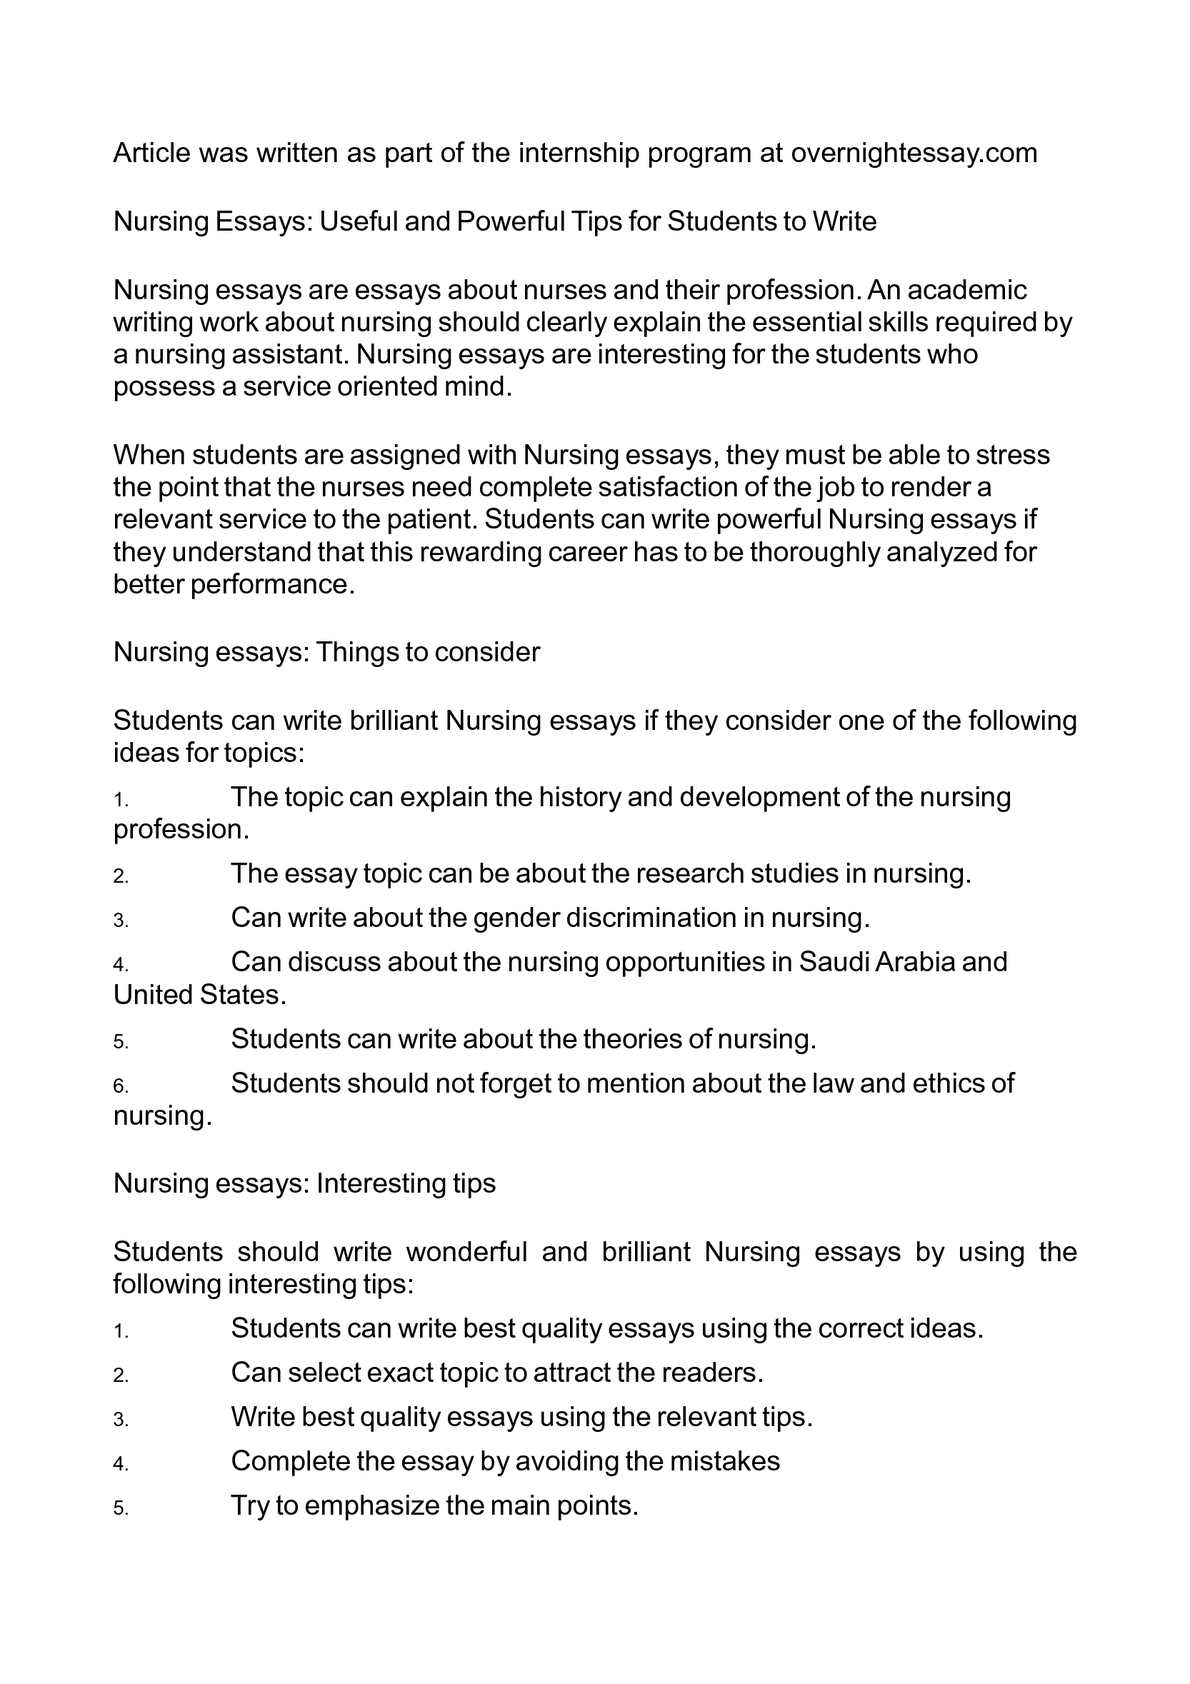 Essay On Adult Literacy  Sincerity Essay also Stress In The Workplace Essay Calamo  Nursing Essays Useful And Powerful Tips For Students To Write Fix My Essay